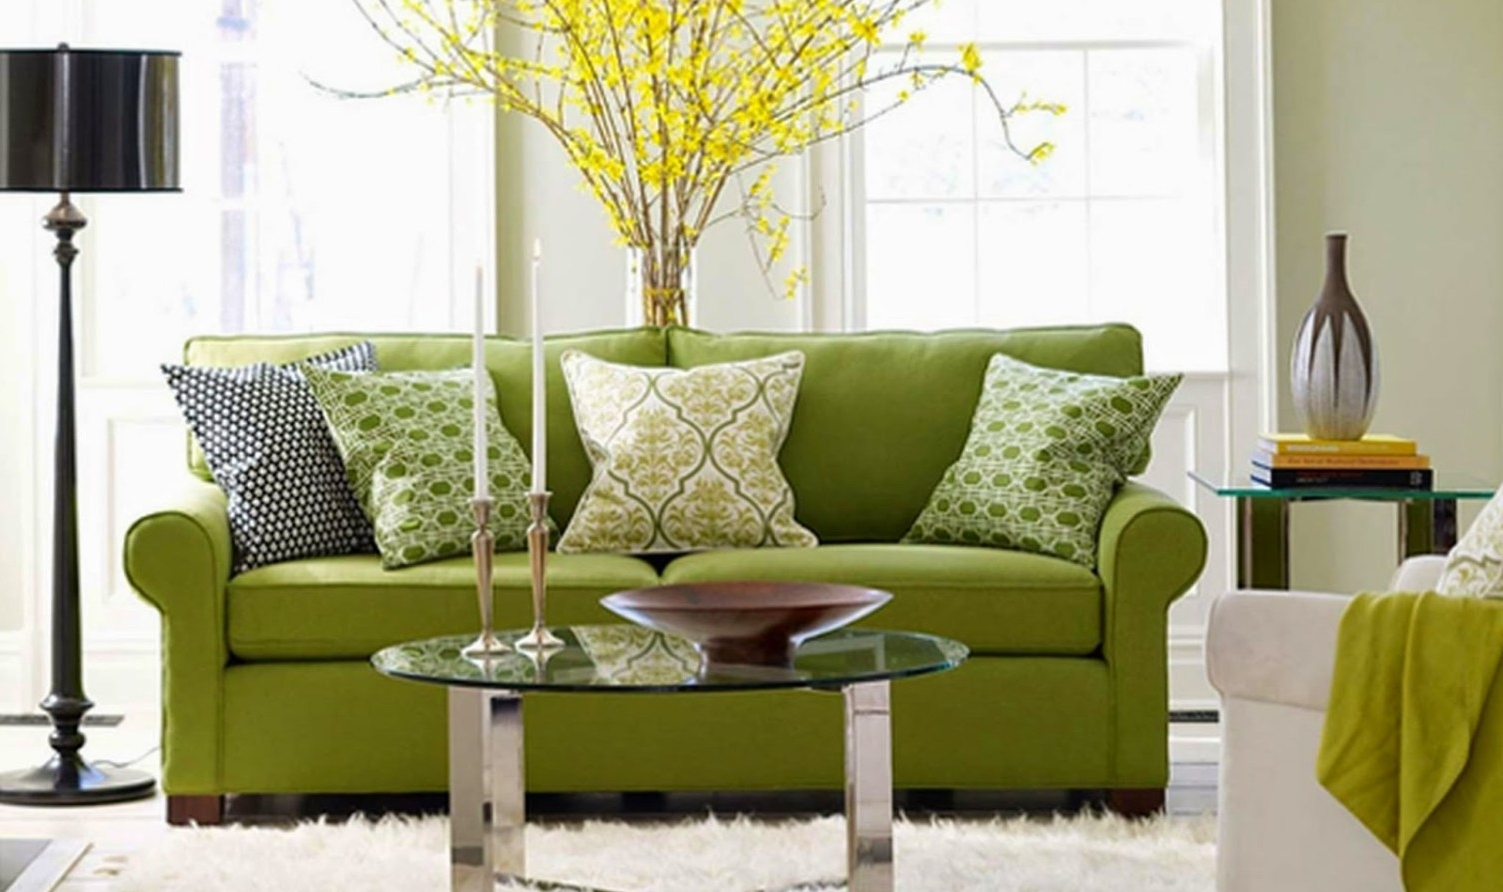 Green Sofa Chairs Inside Well Known Chairs : Rac42Srac Amazing Green Sofa Chairs 2 Seater Sofa Unique (Gallery 16 of 20)